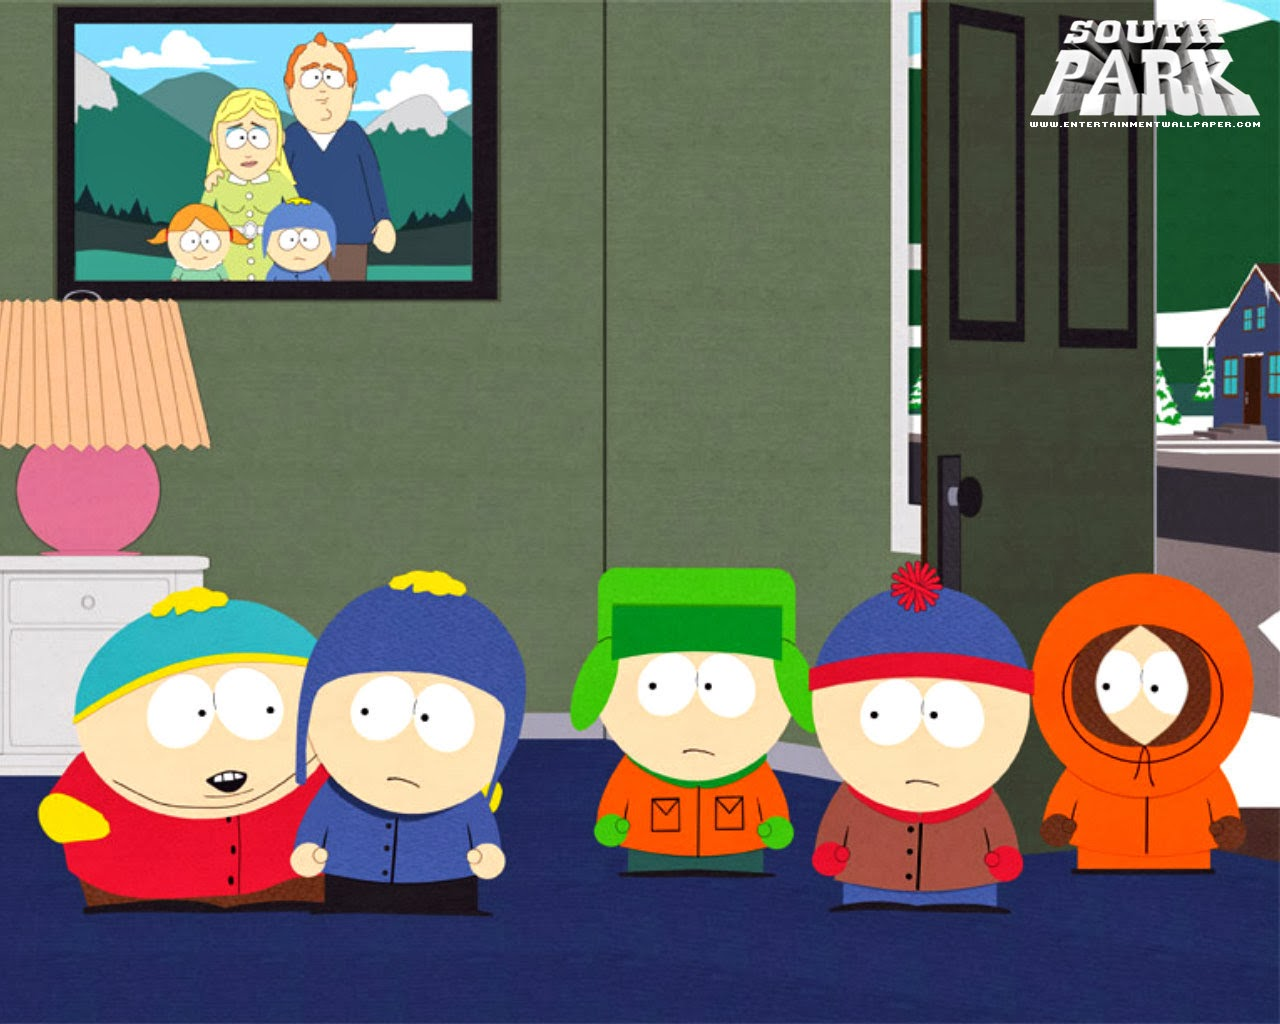 south park wallpapers The Best Wallpapers 1280x1024